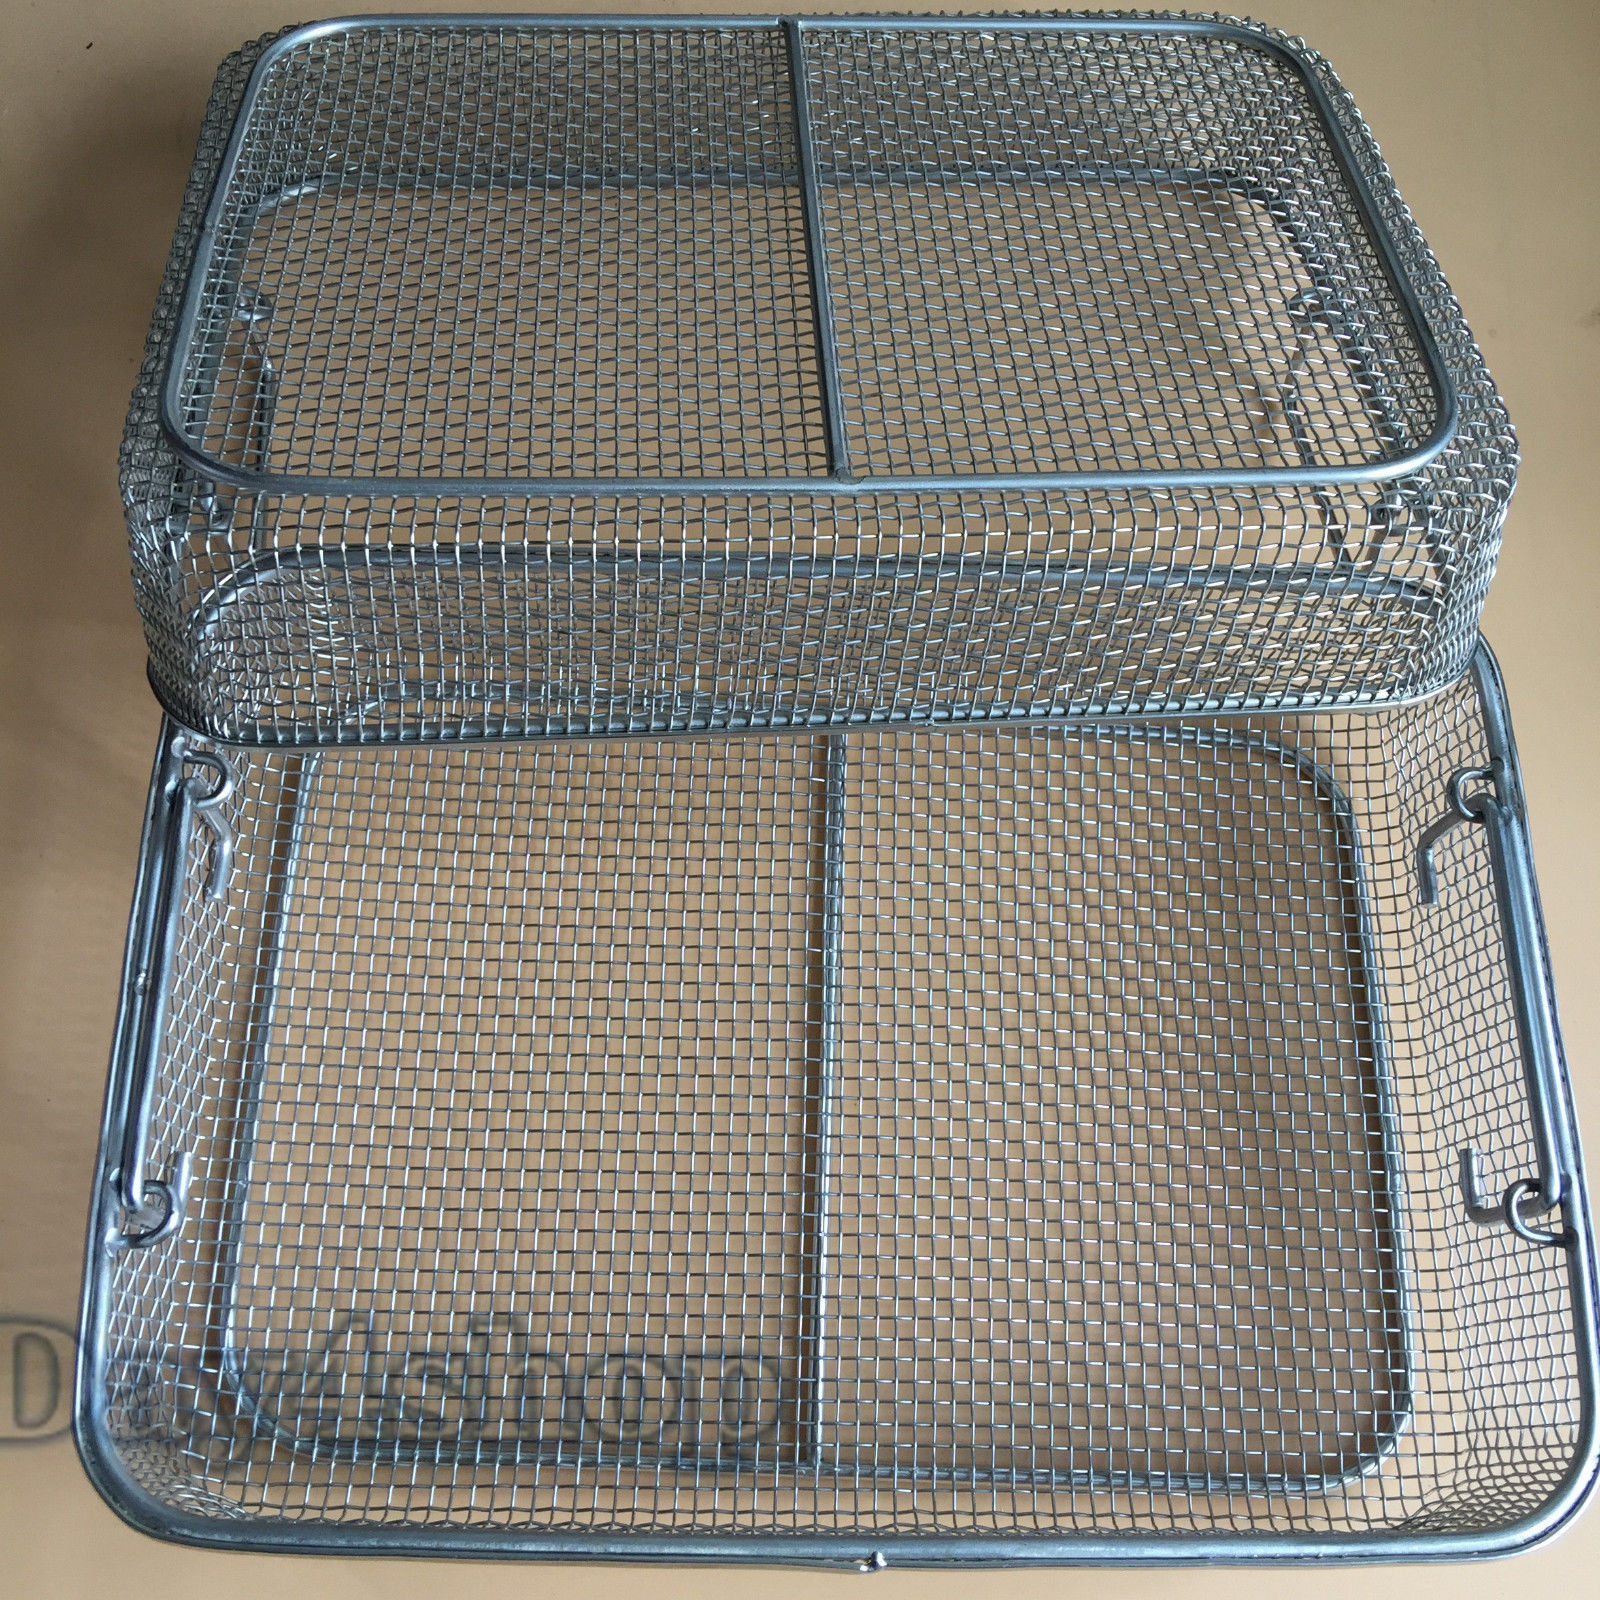 New 2pcs Stainless steel sterilization tray case box surgical instrumentNew 2pcs Stainless steel sterilization tray case box surgical instrument